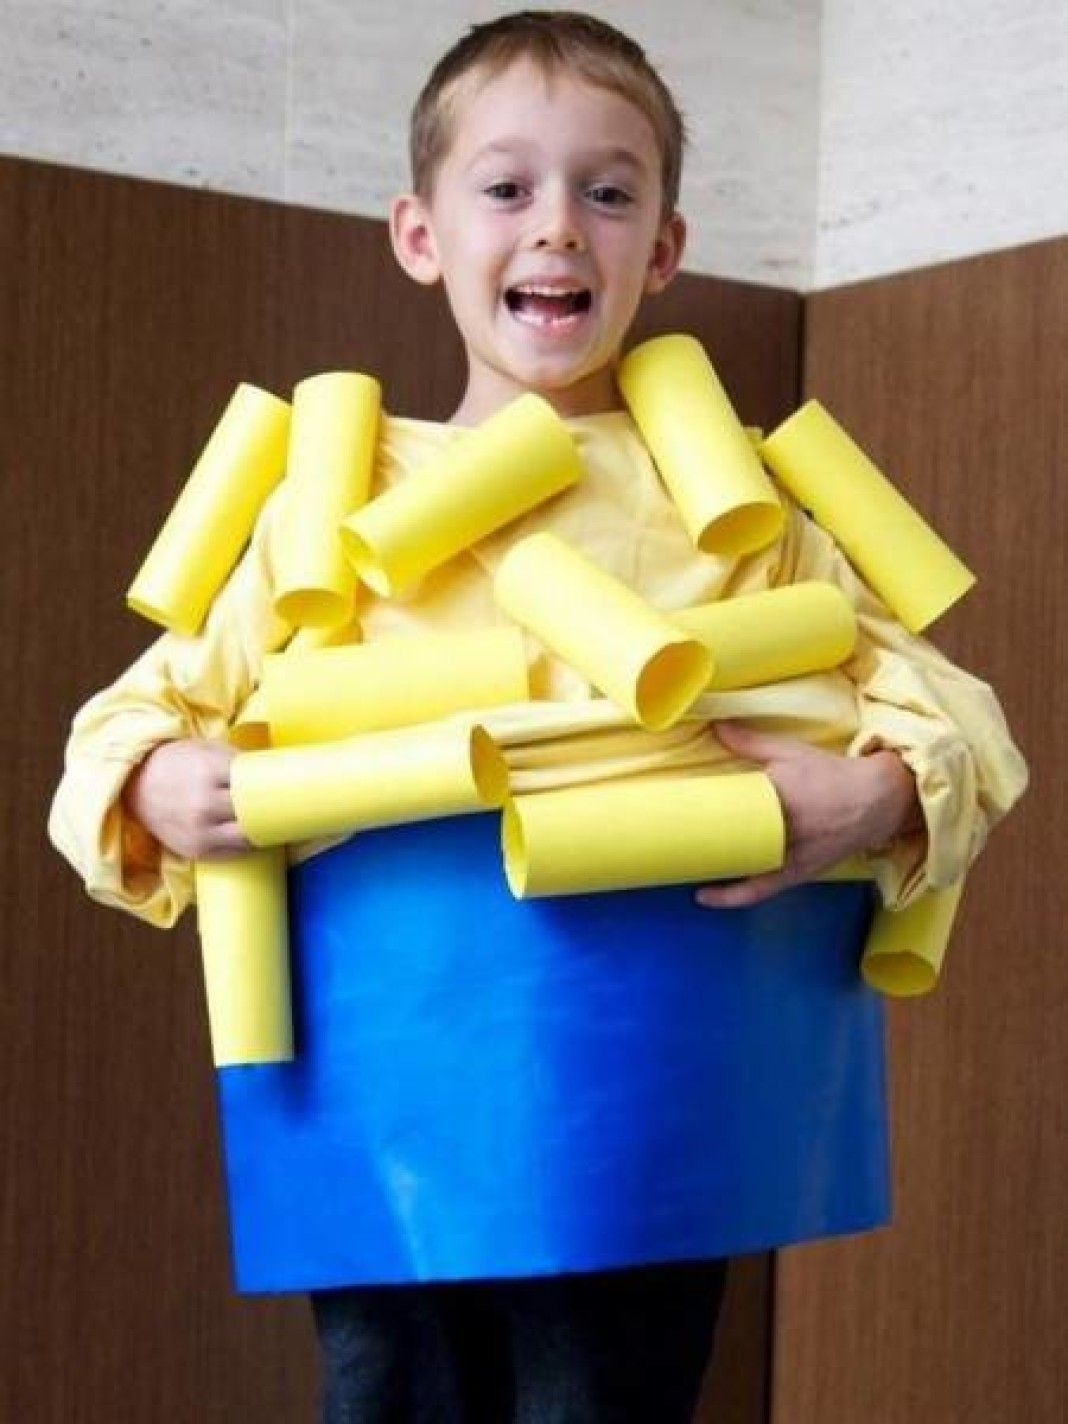 Pin by maria dolores on disfresses pinterest halloween 2017 8 diy halloween costumes for kids diy macaroni and cheese costume solutioingenieria Images